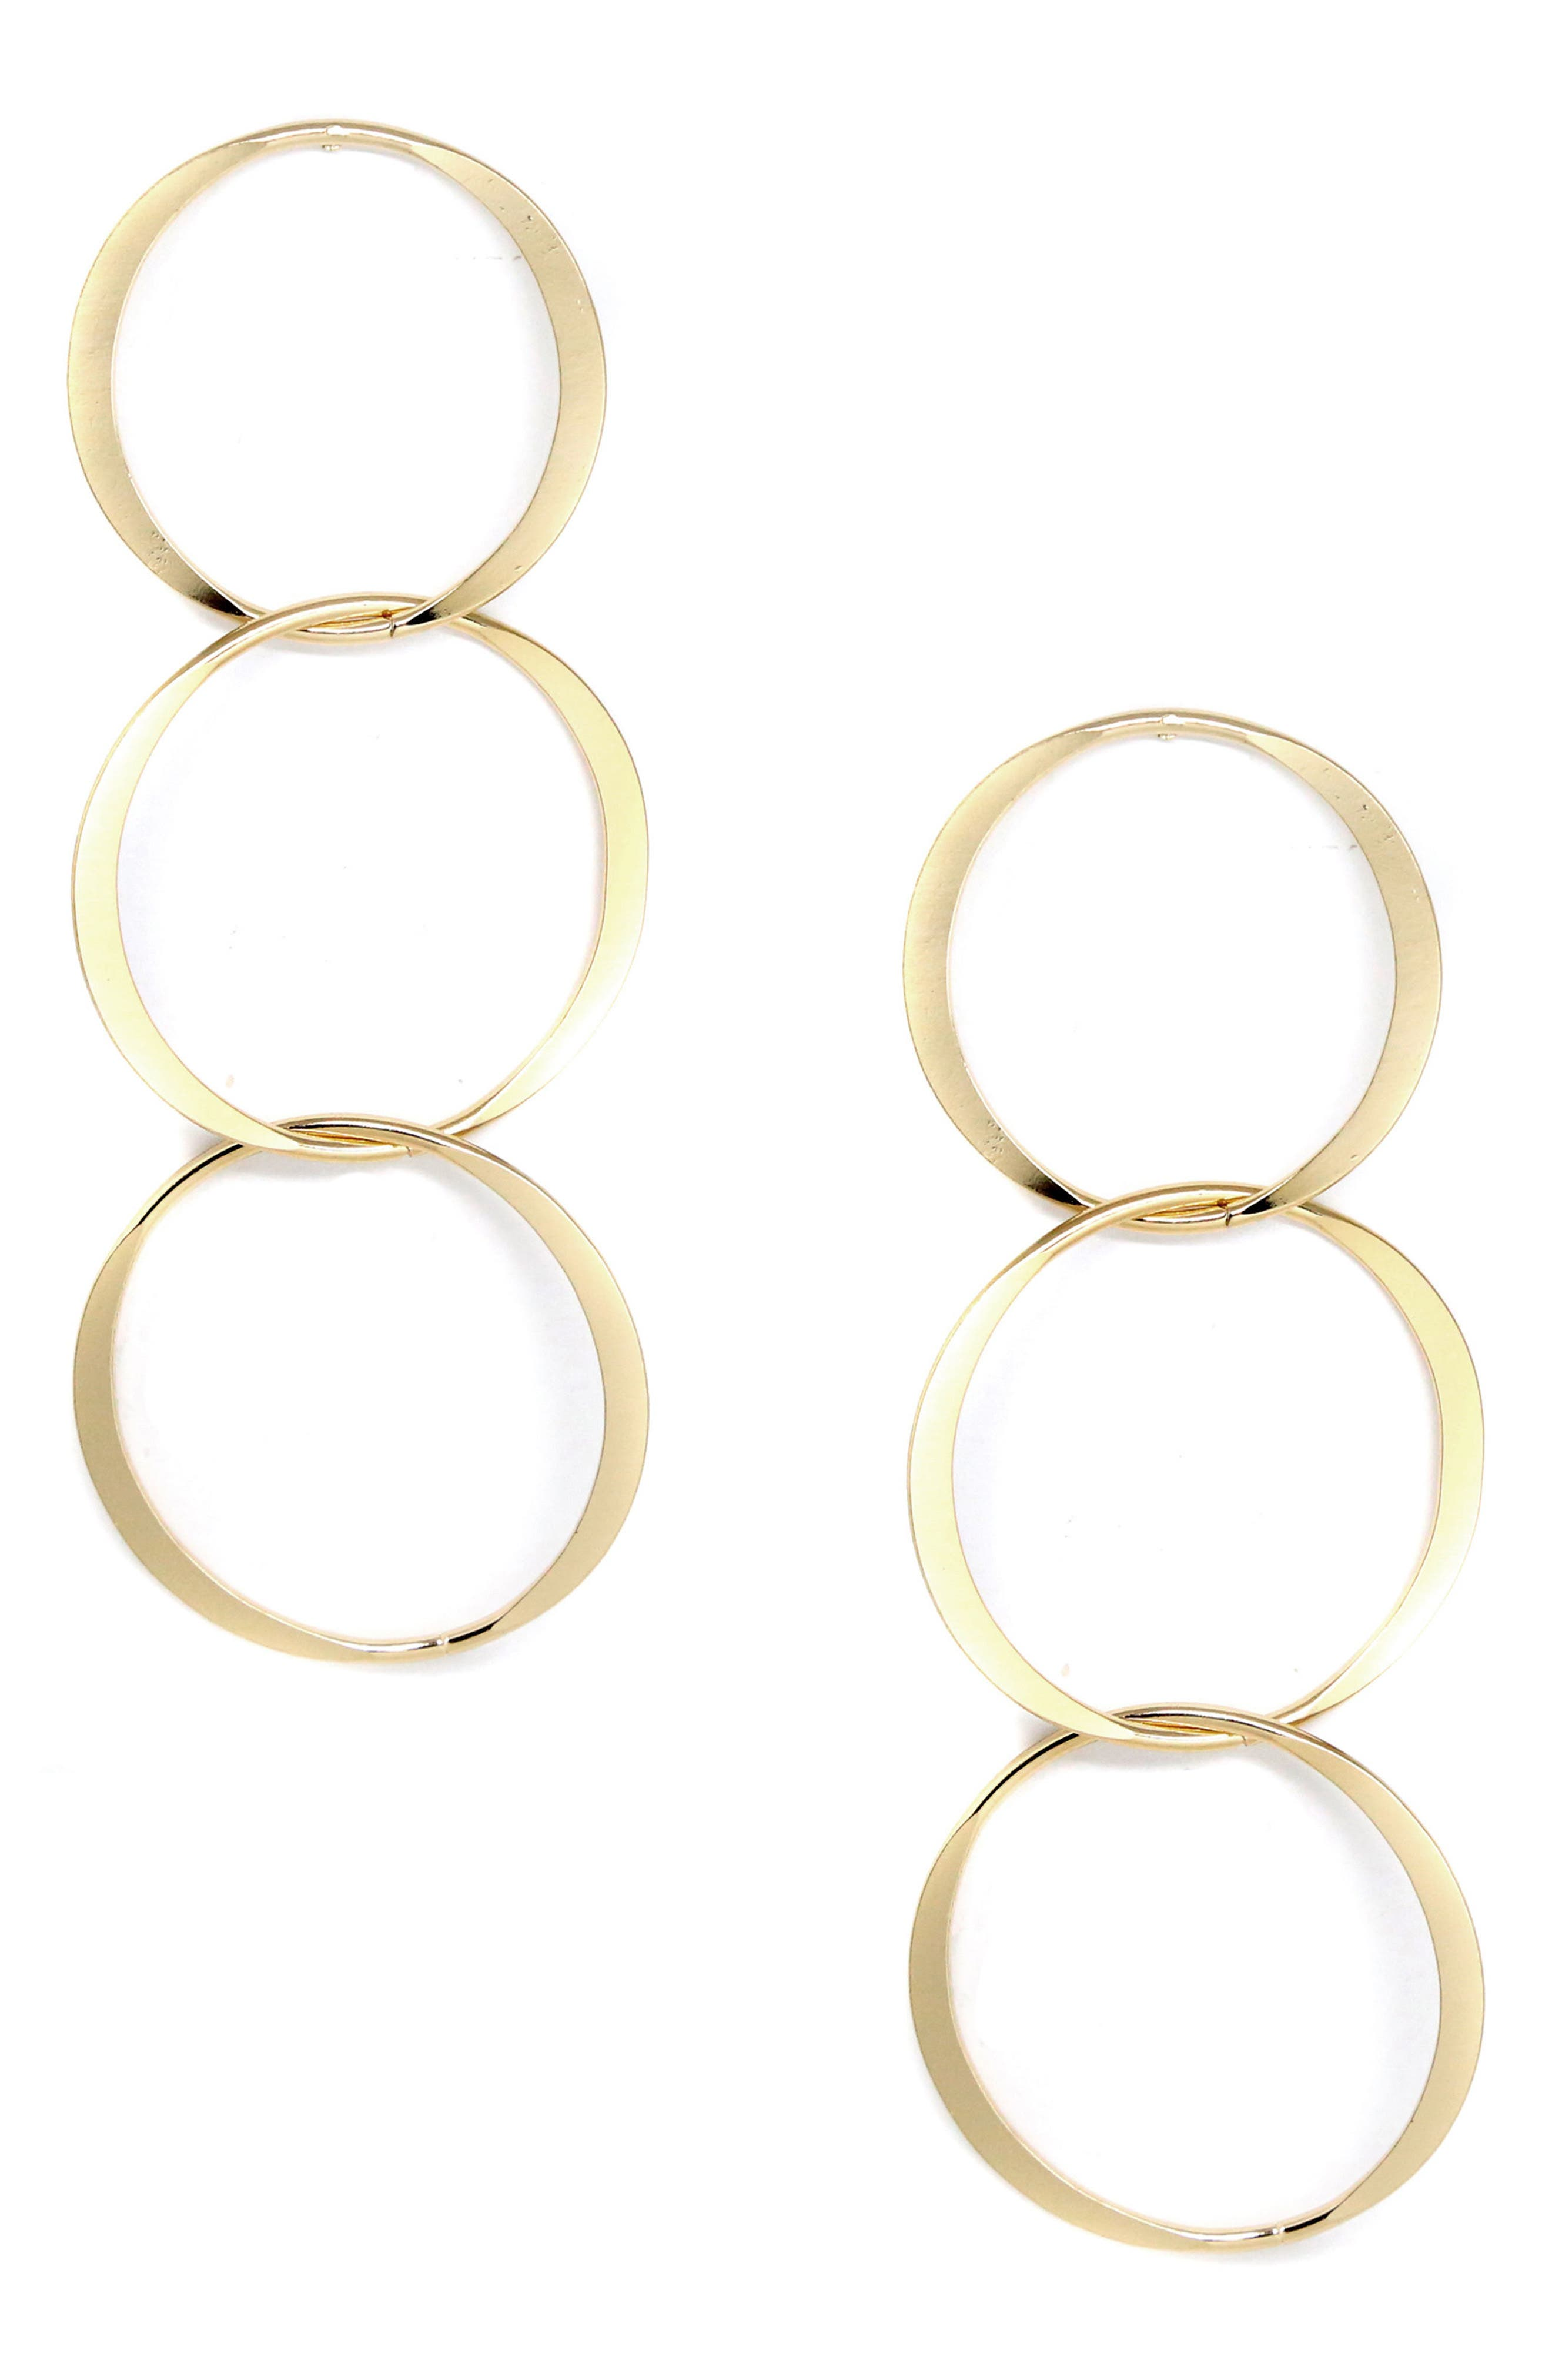 Triple Gold Hoop Earrings,                         Main,                         color, 710